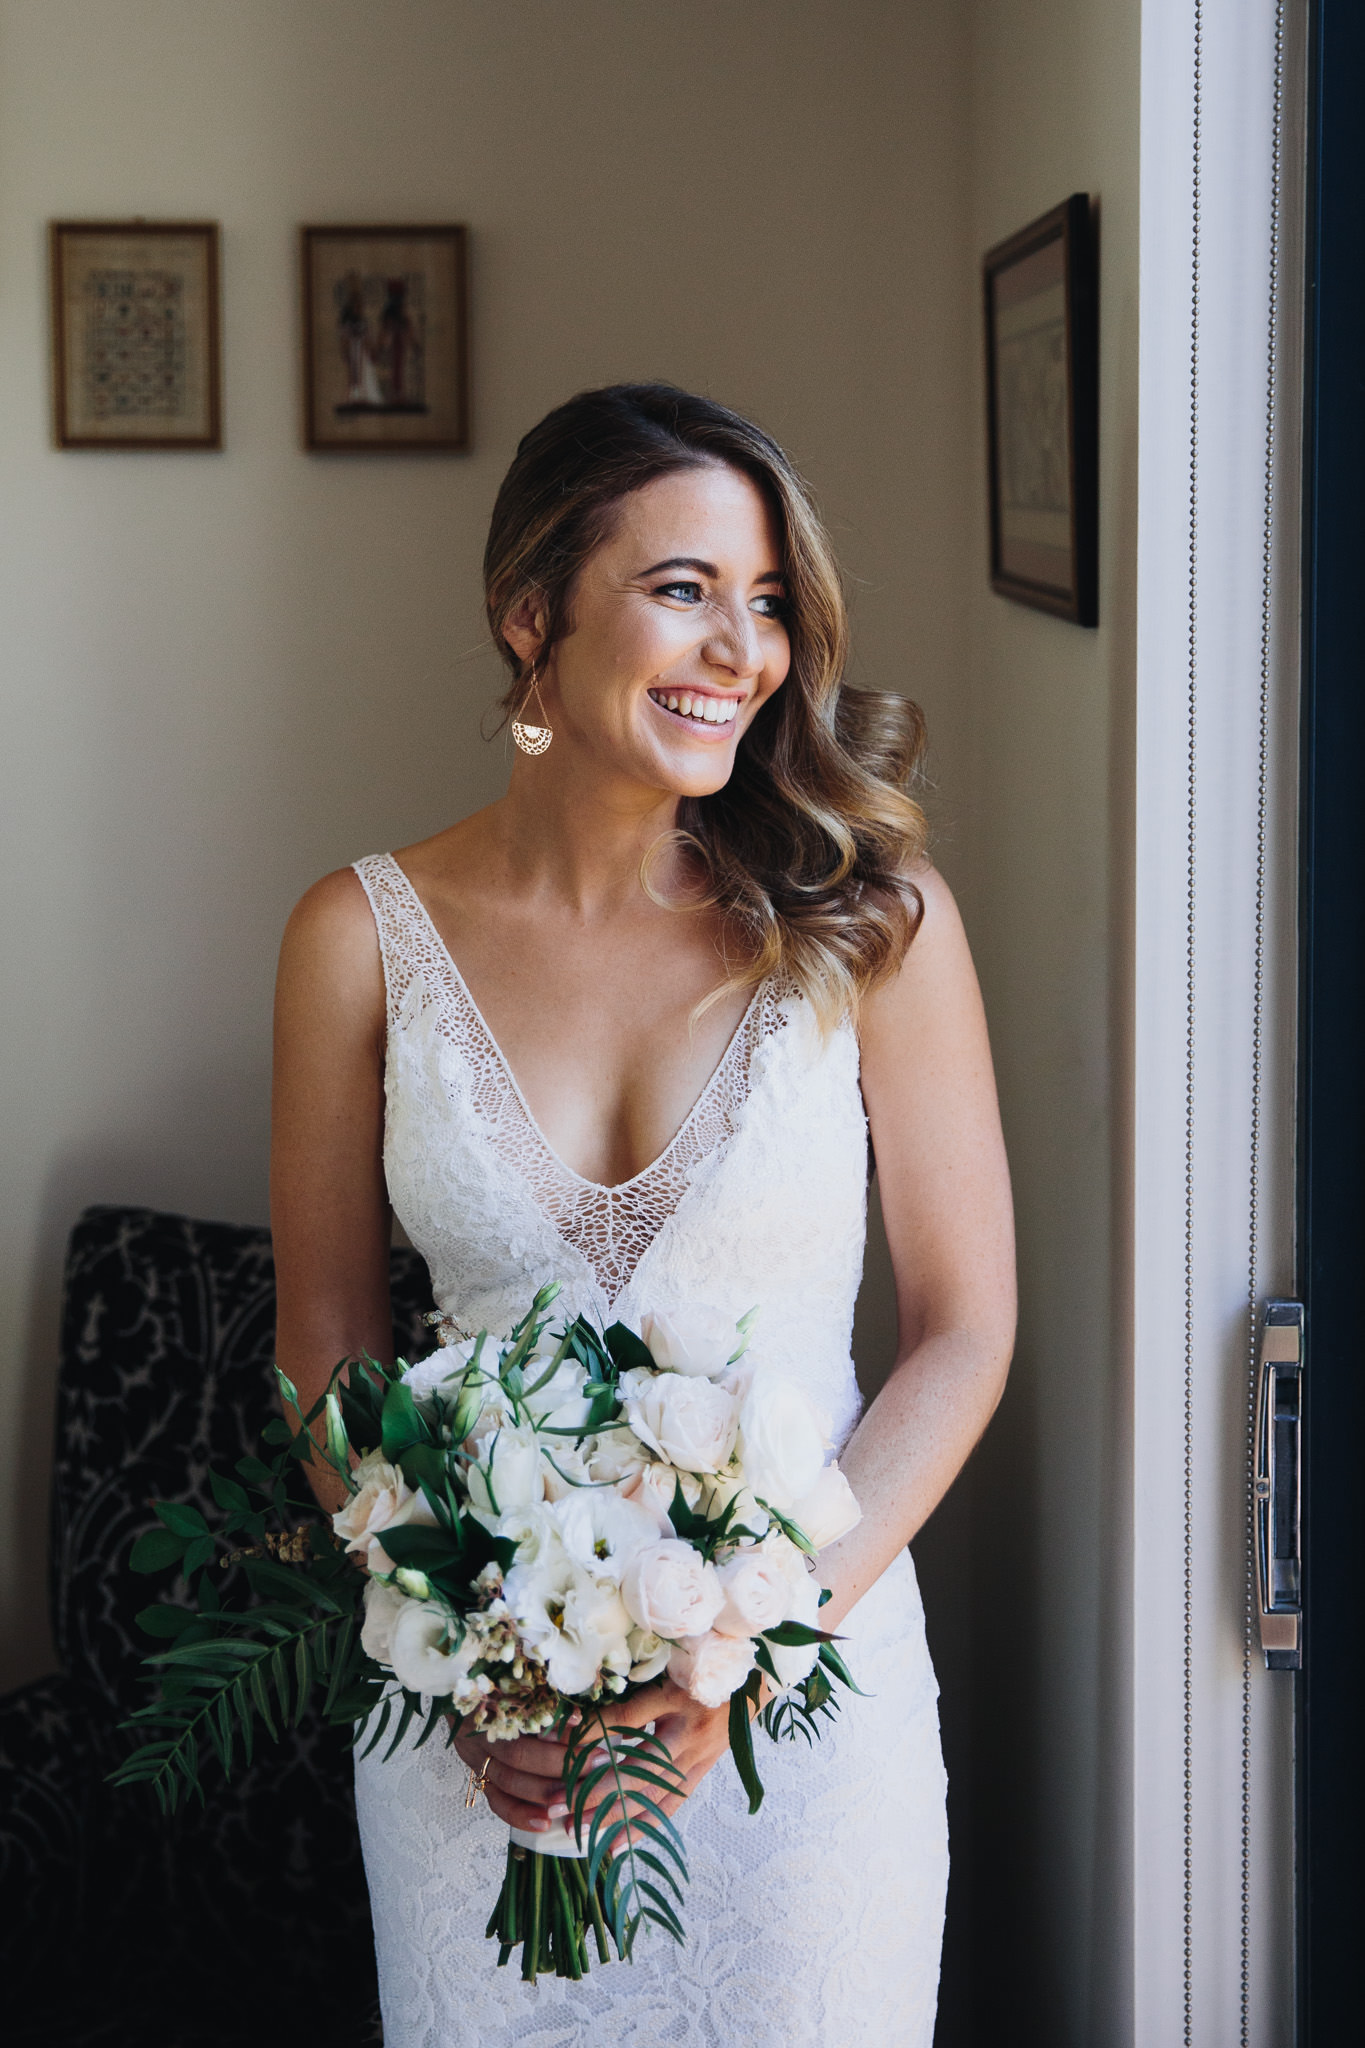 Bride wearing a Grace Loves Lace wedding dress holding her wedding flowers